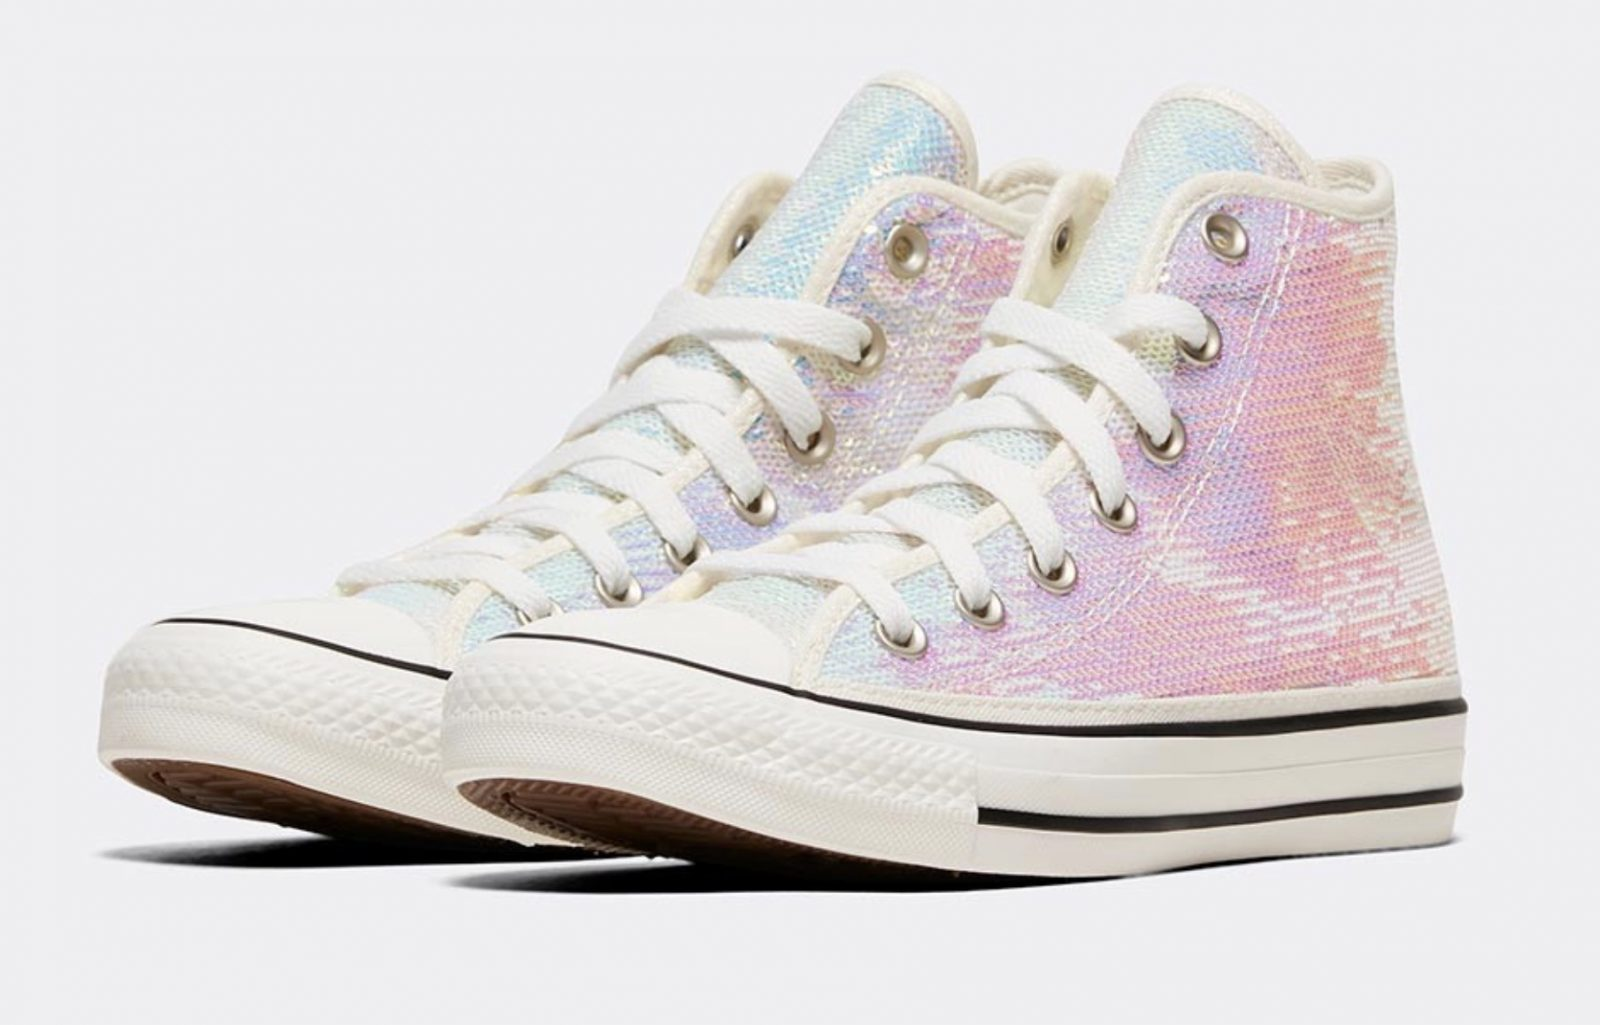 Converse Celebrate Their Chuck Taylor Silhouette In A Complete Sequin Look 4